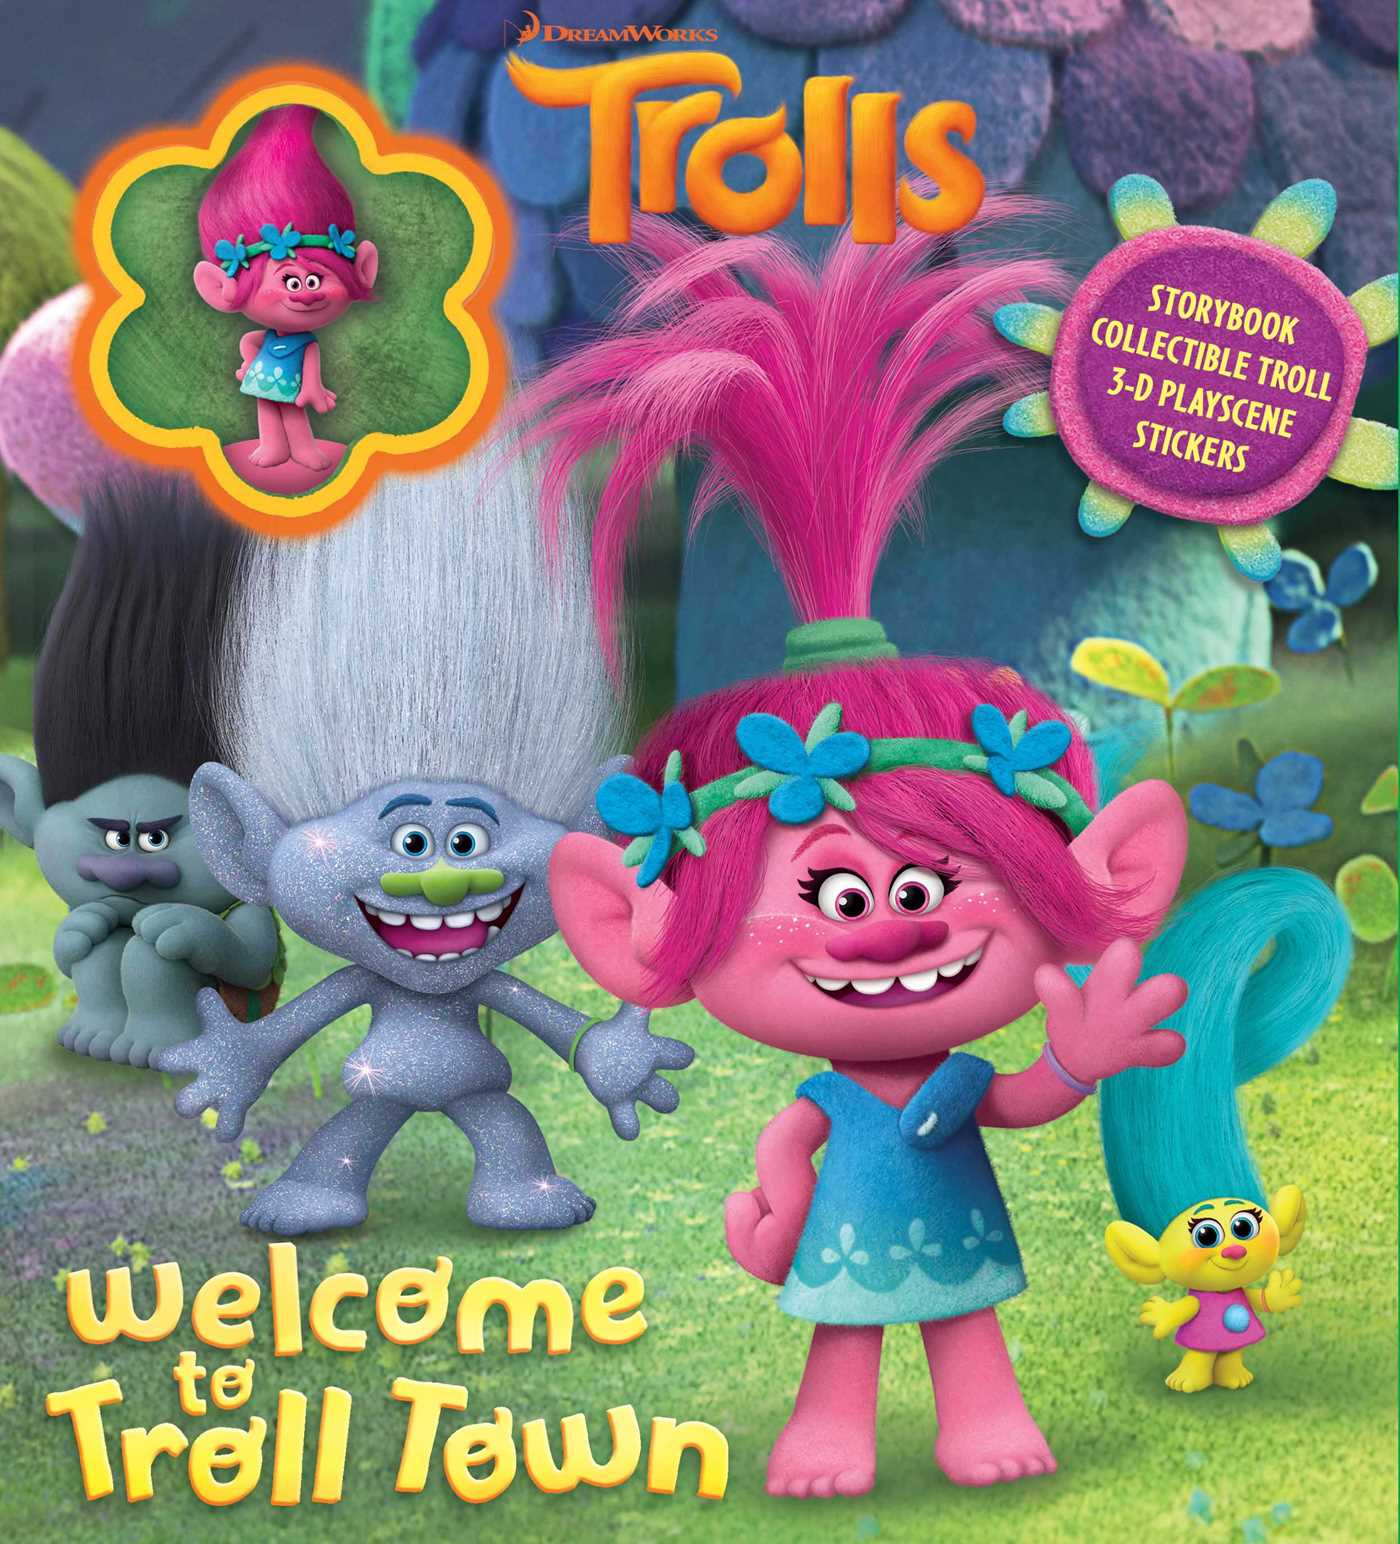 dreamworks trolls welcome to troll town storybook with poppy